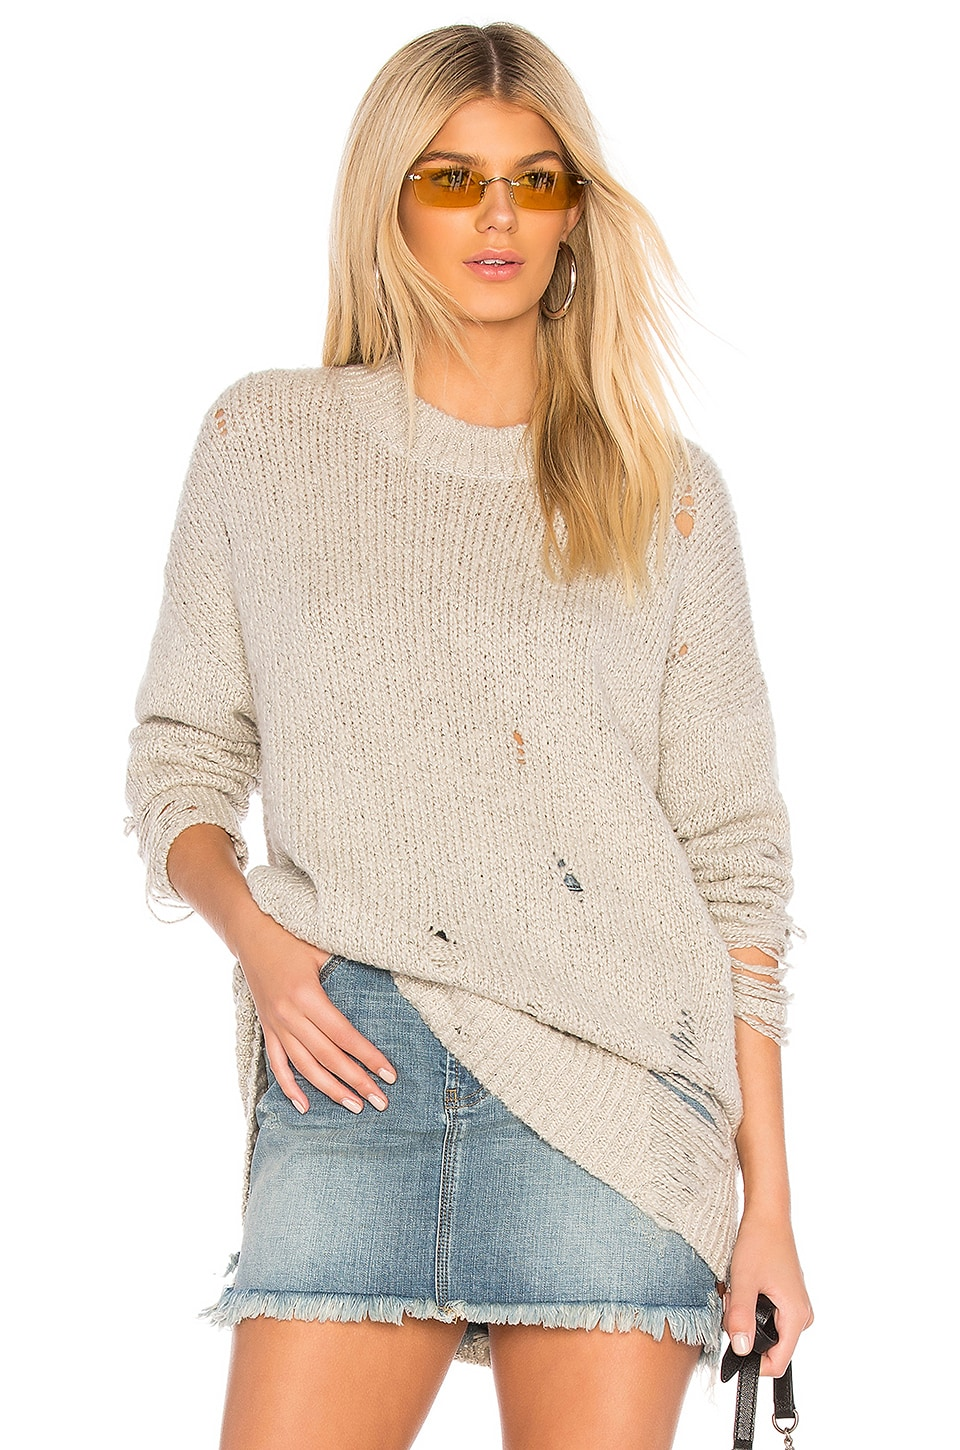 One Teaspoon Laddered Whiskey Sweater in Natural